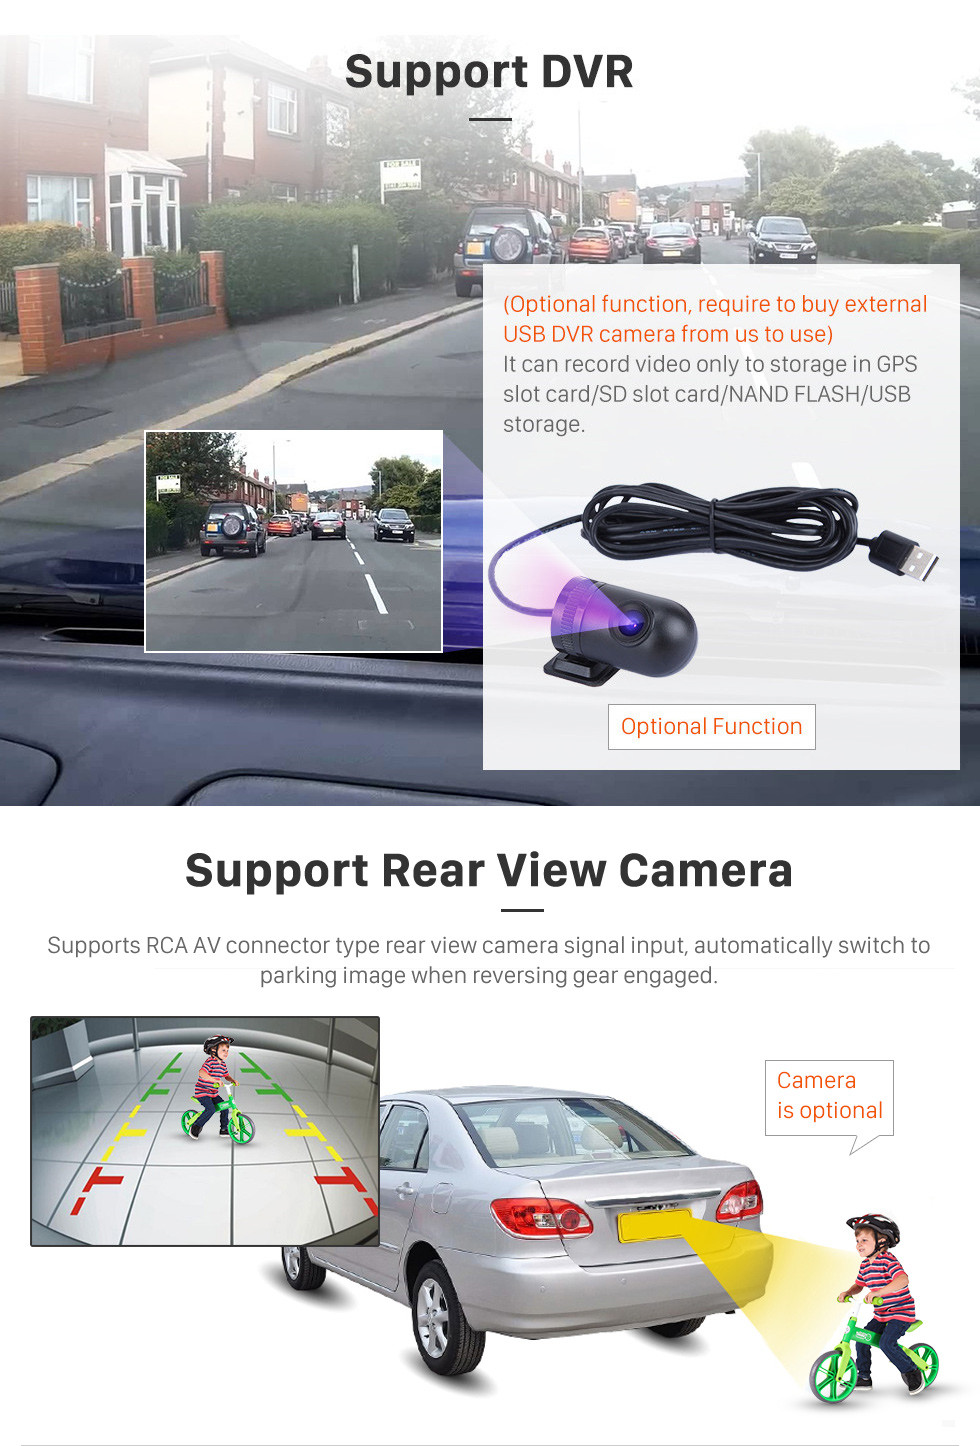 Seicane 9 inch Android 10.0 Bluetooth Car GPS Navigation Stereo for 2011-2016 Lifan X60 Radio support RDS 4G WiFi Mirror Link OBD2 Steering Wheel Control